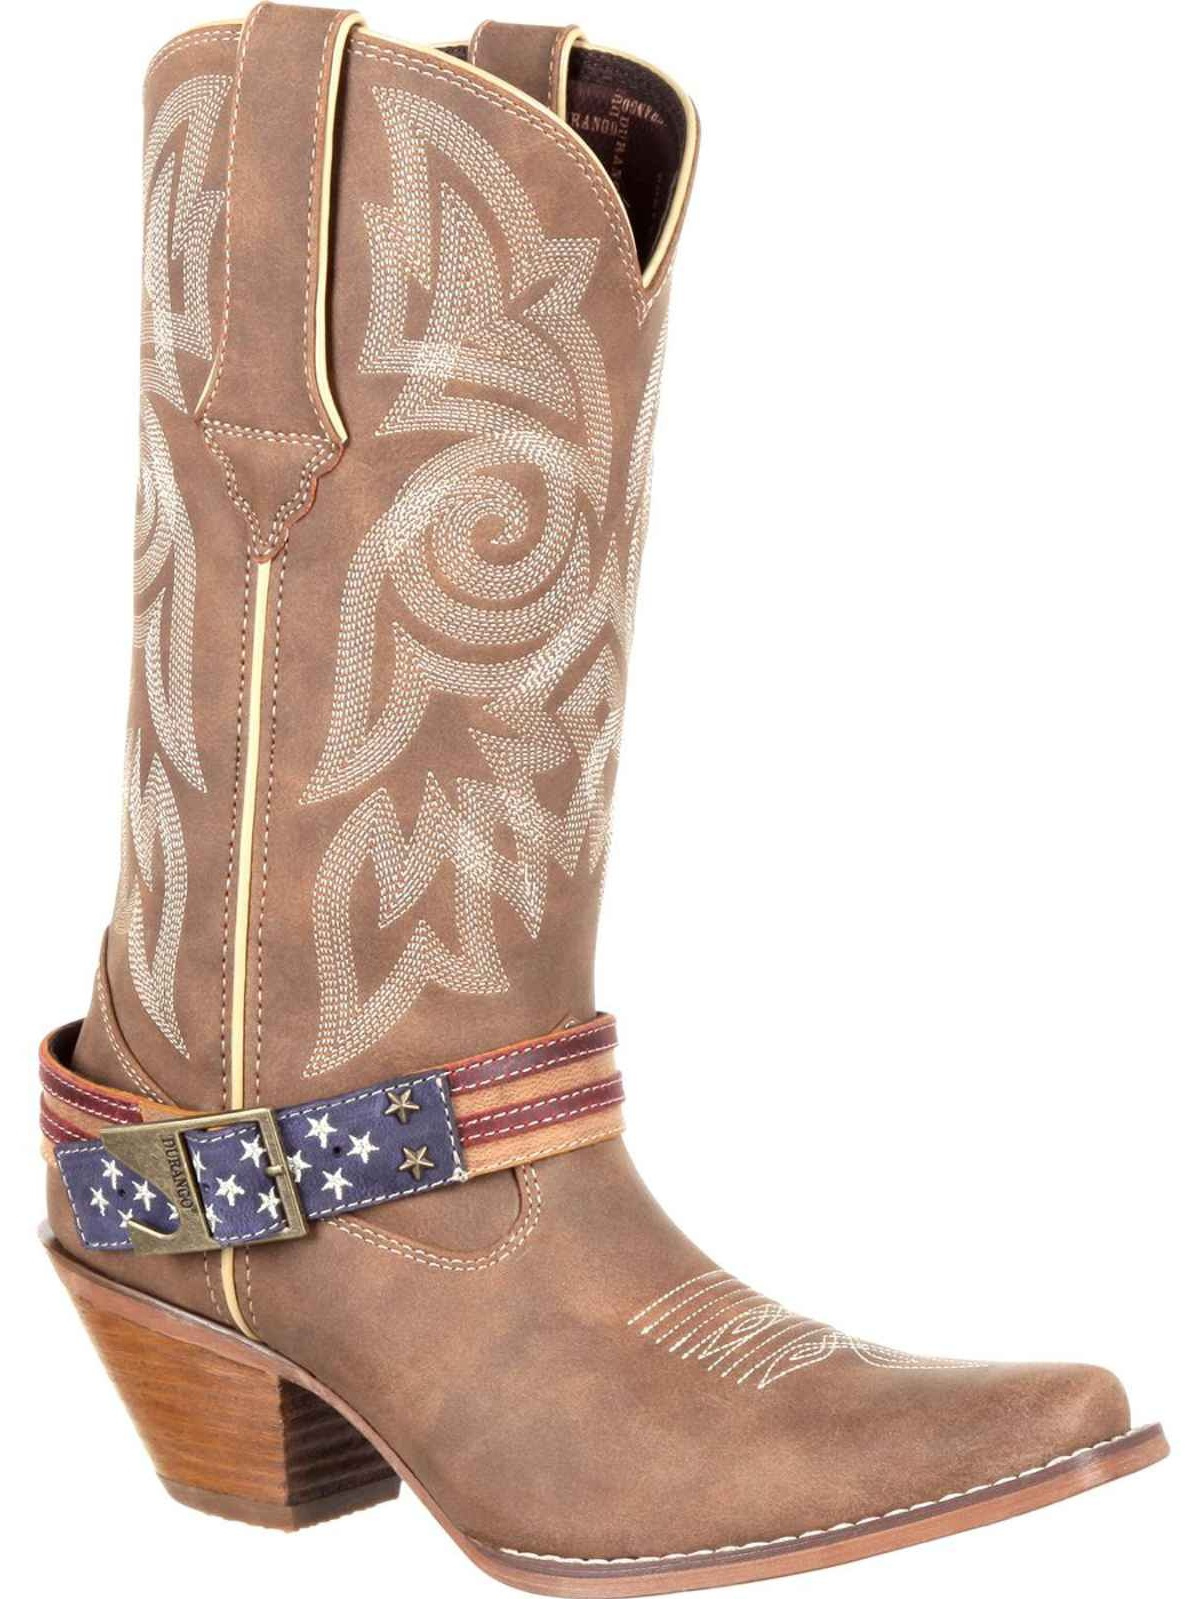 Crush By Durango Womens Flag Accessory Western Boot DRD0208 by Durango